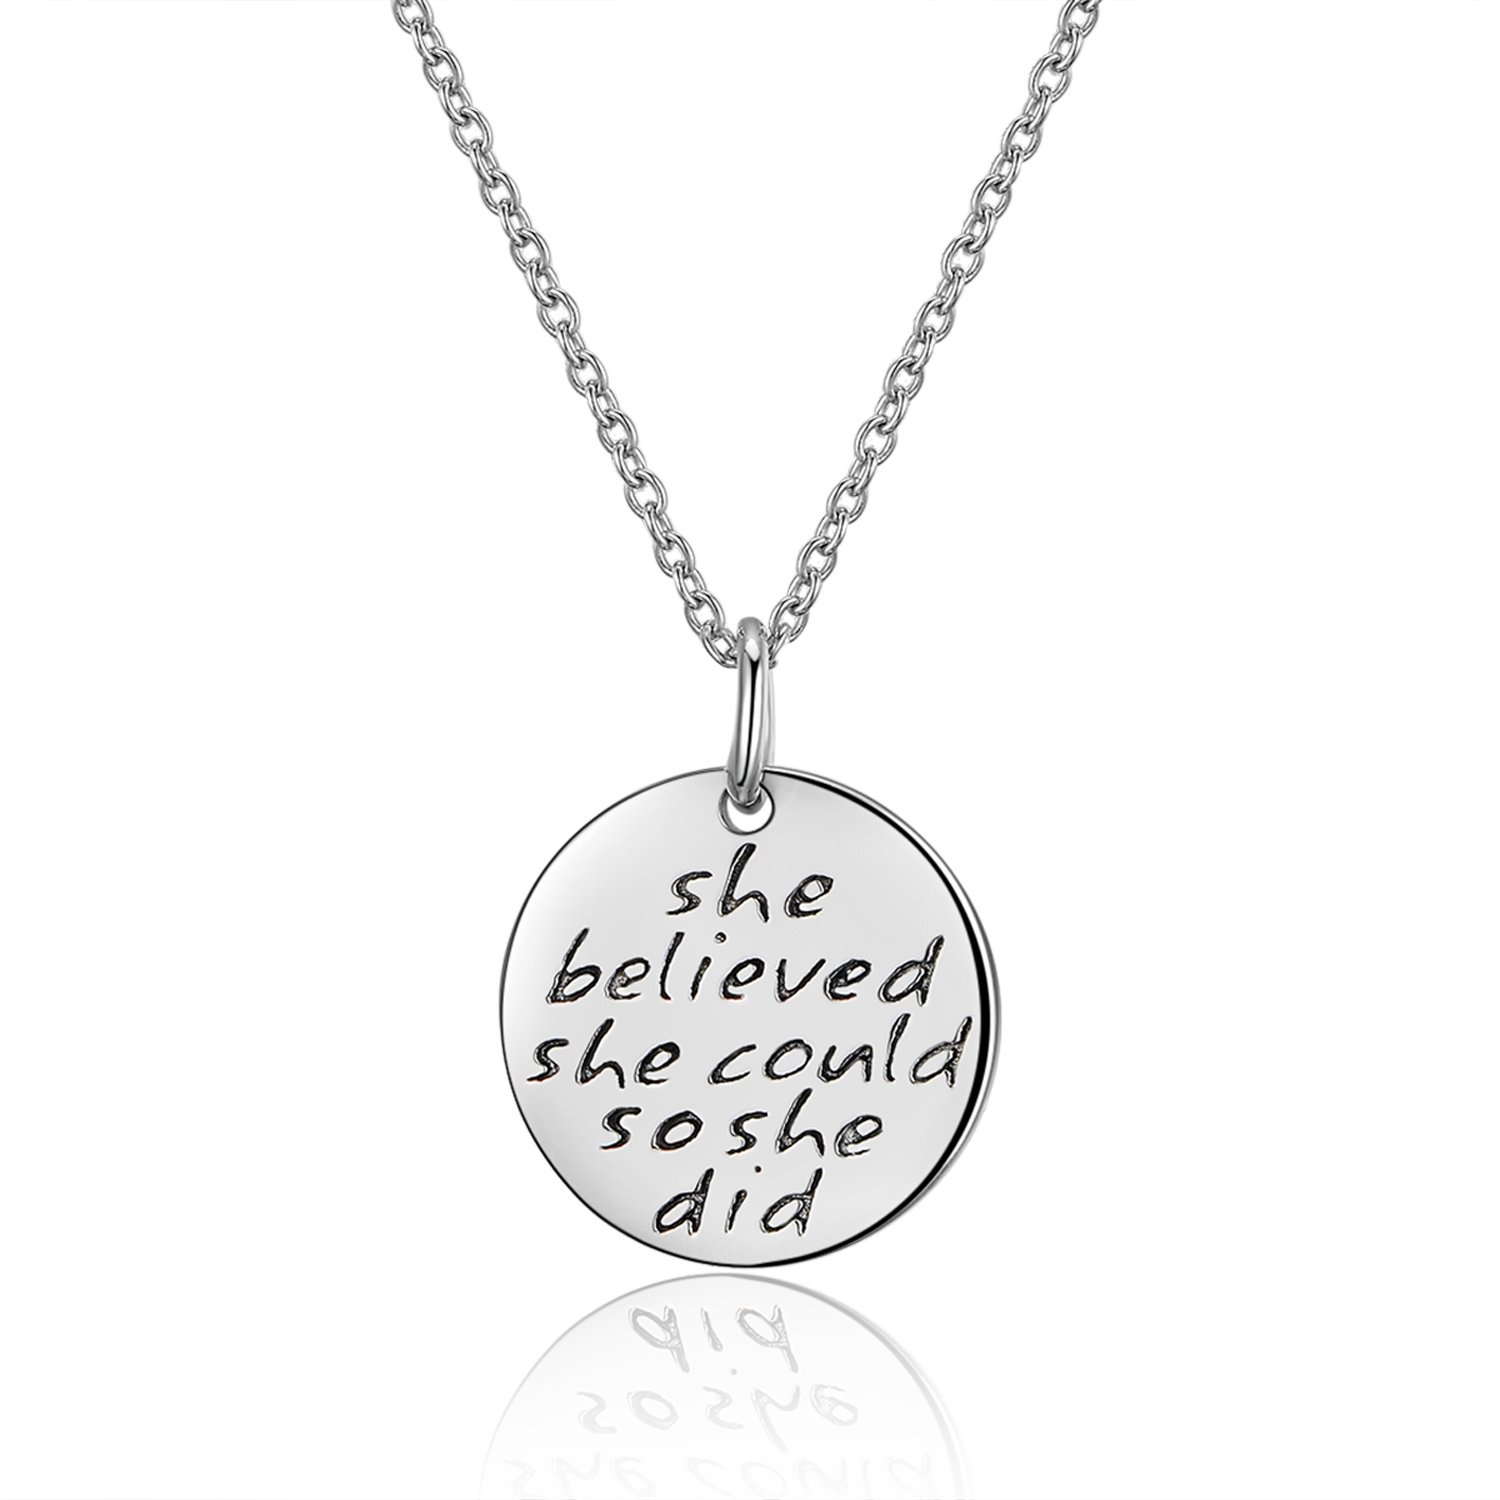 Annamate 925 Sterling Silver Engraved Message She believed she could so she did Inspirational Disc Necklace